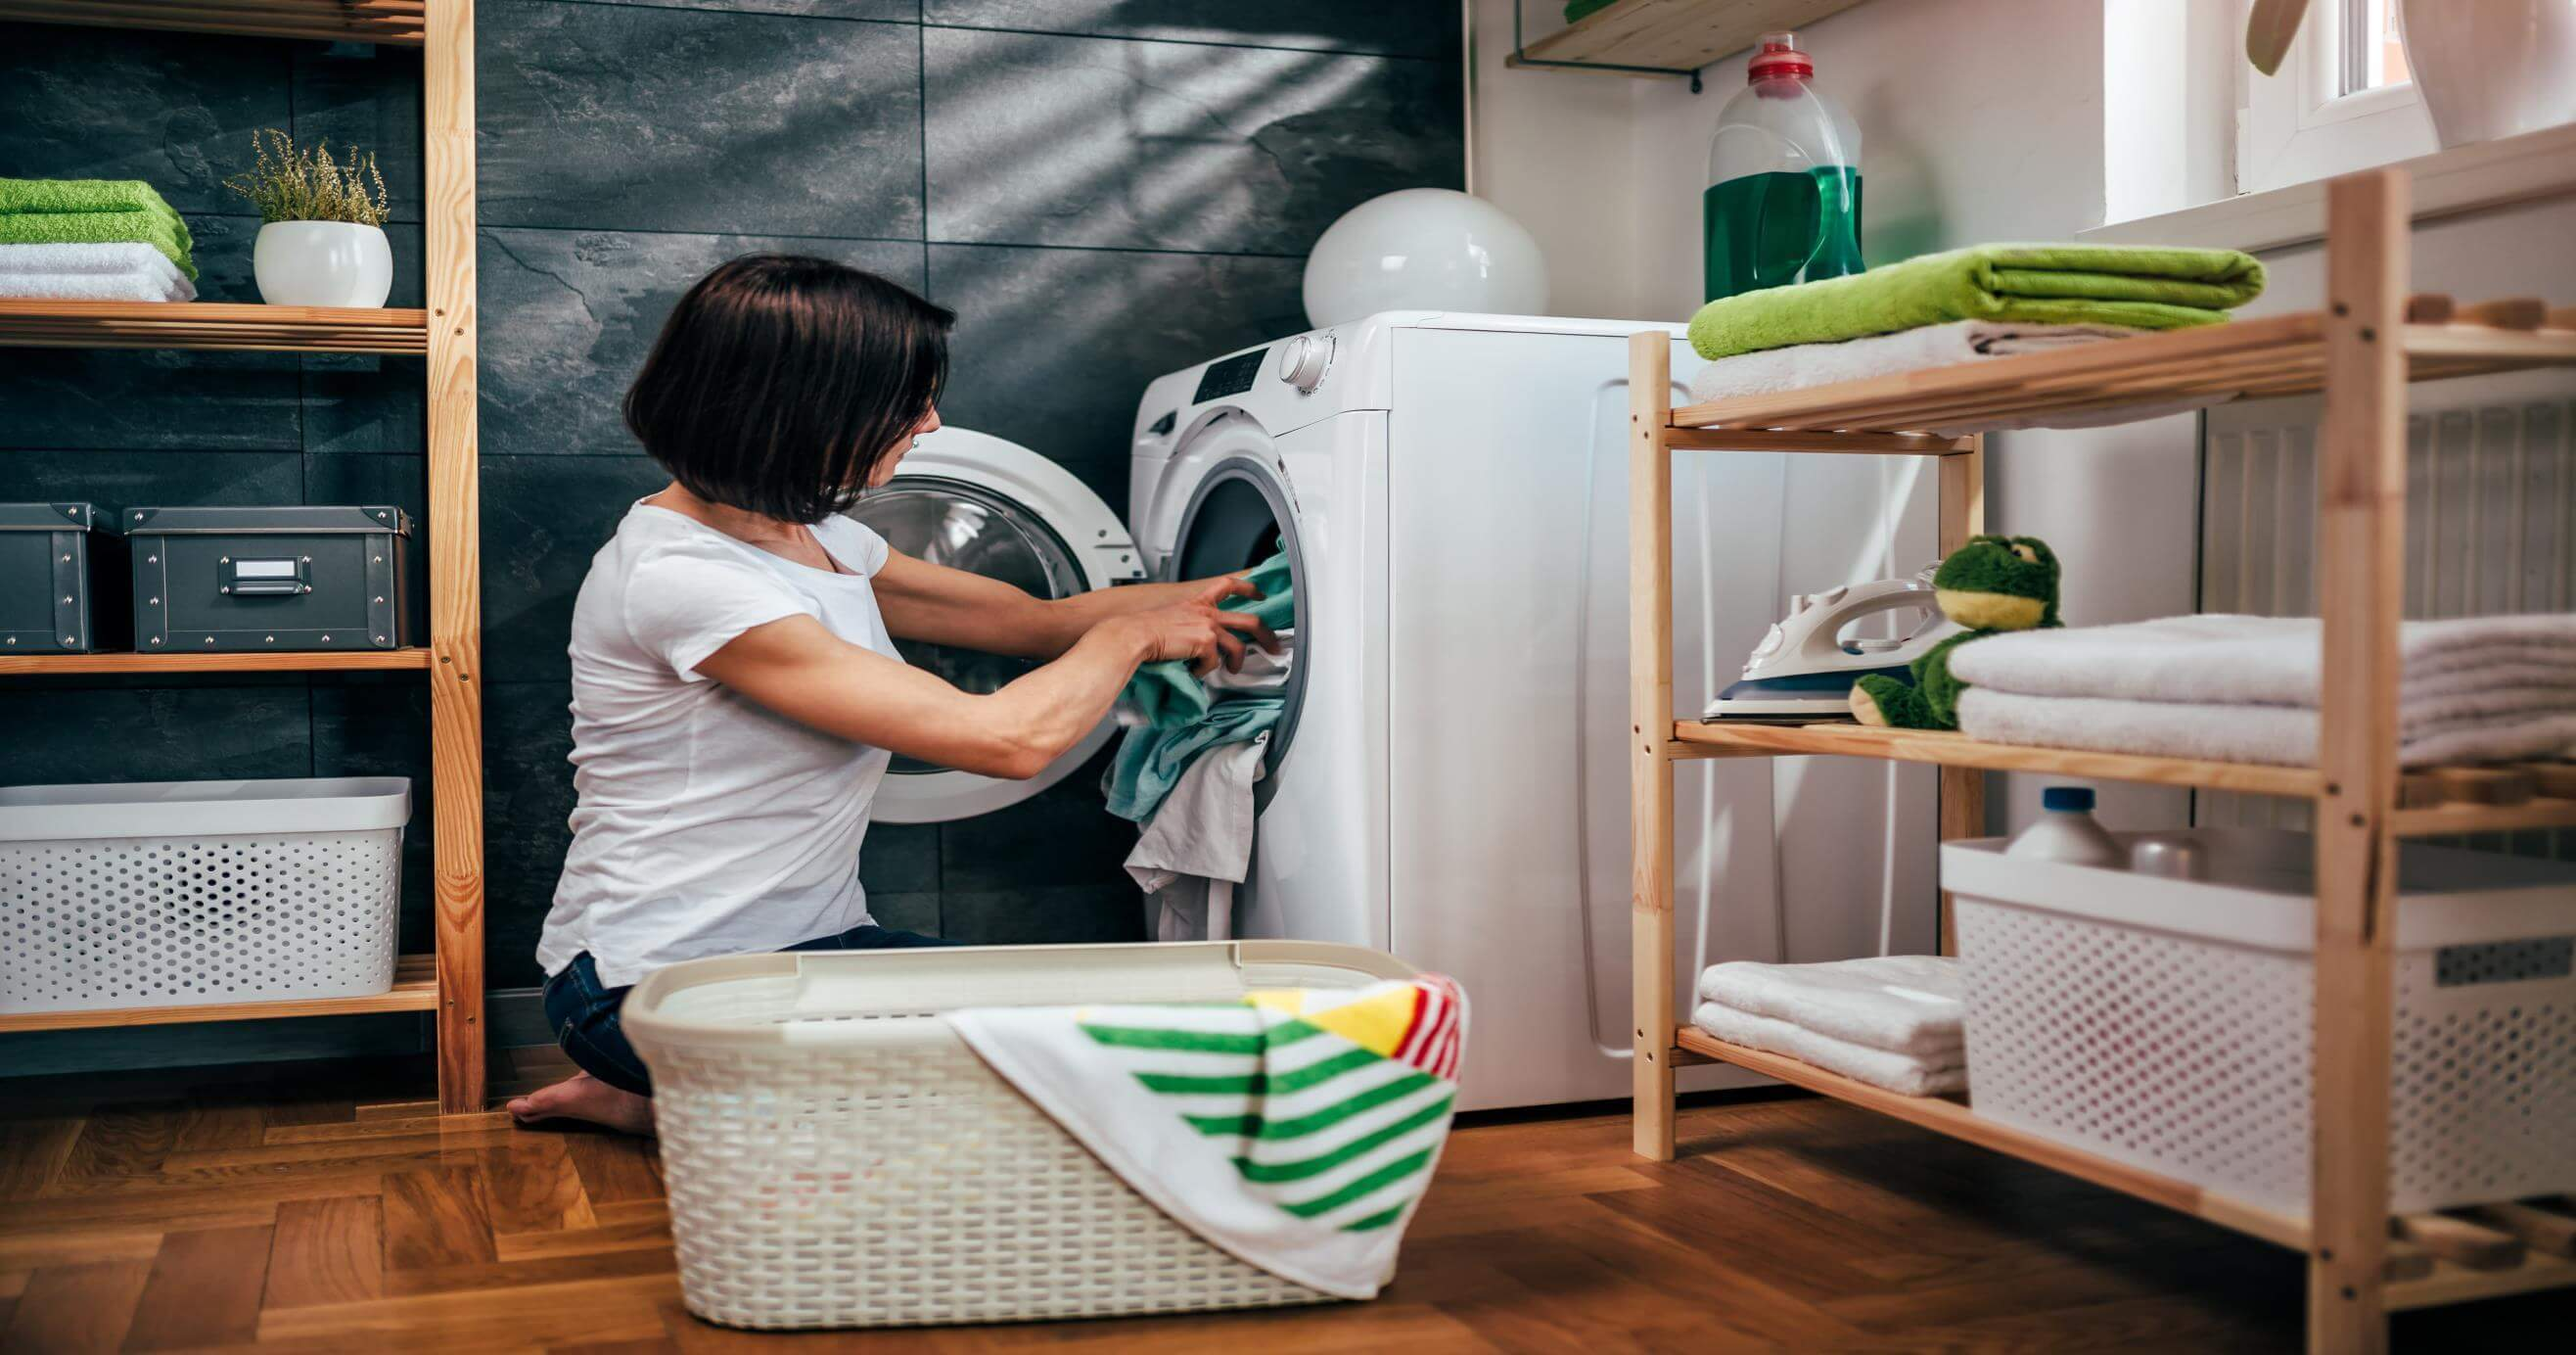 Common Washer and Dryer problems: How to fix them